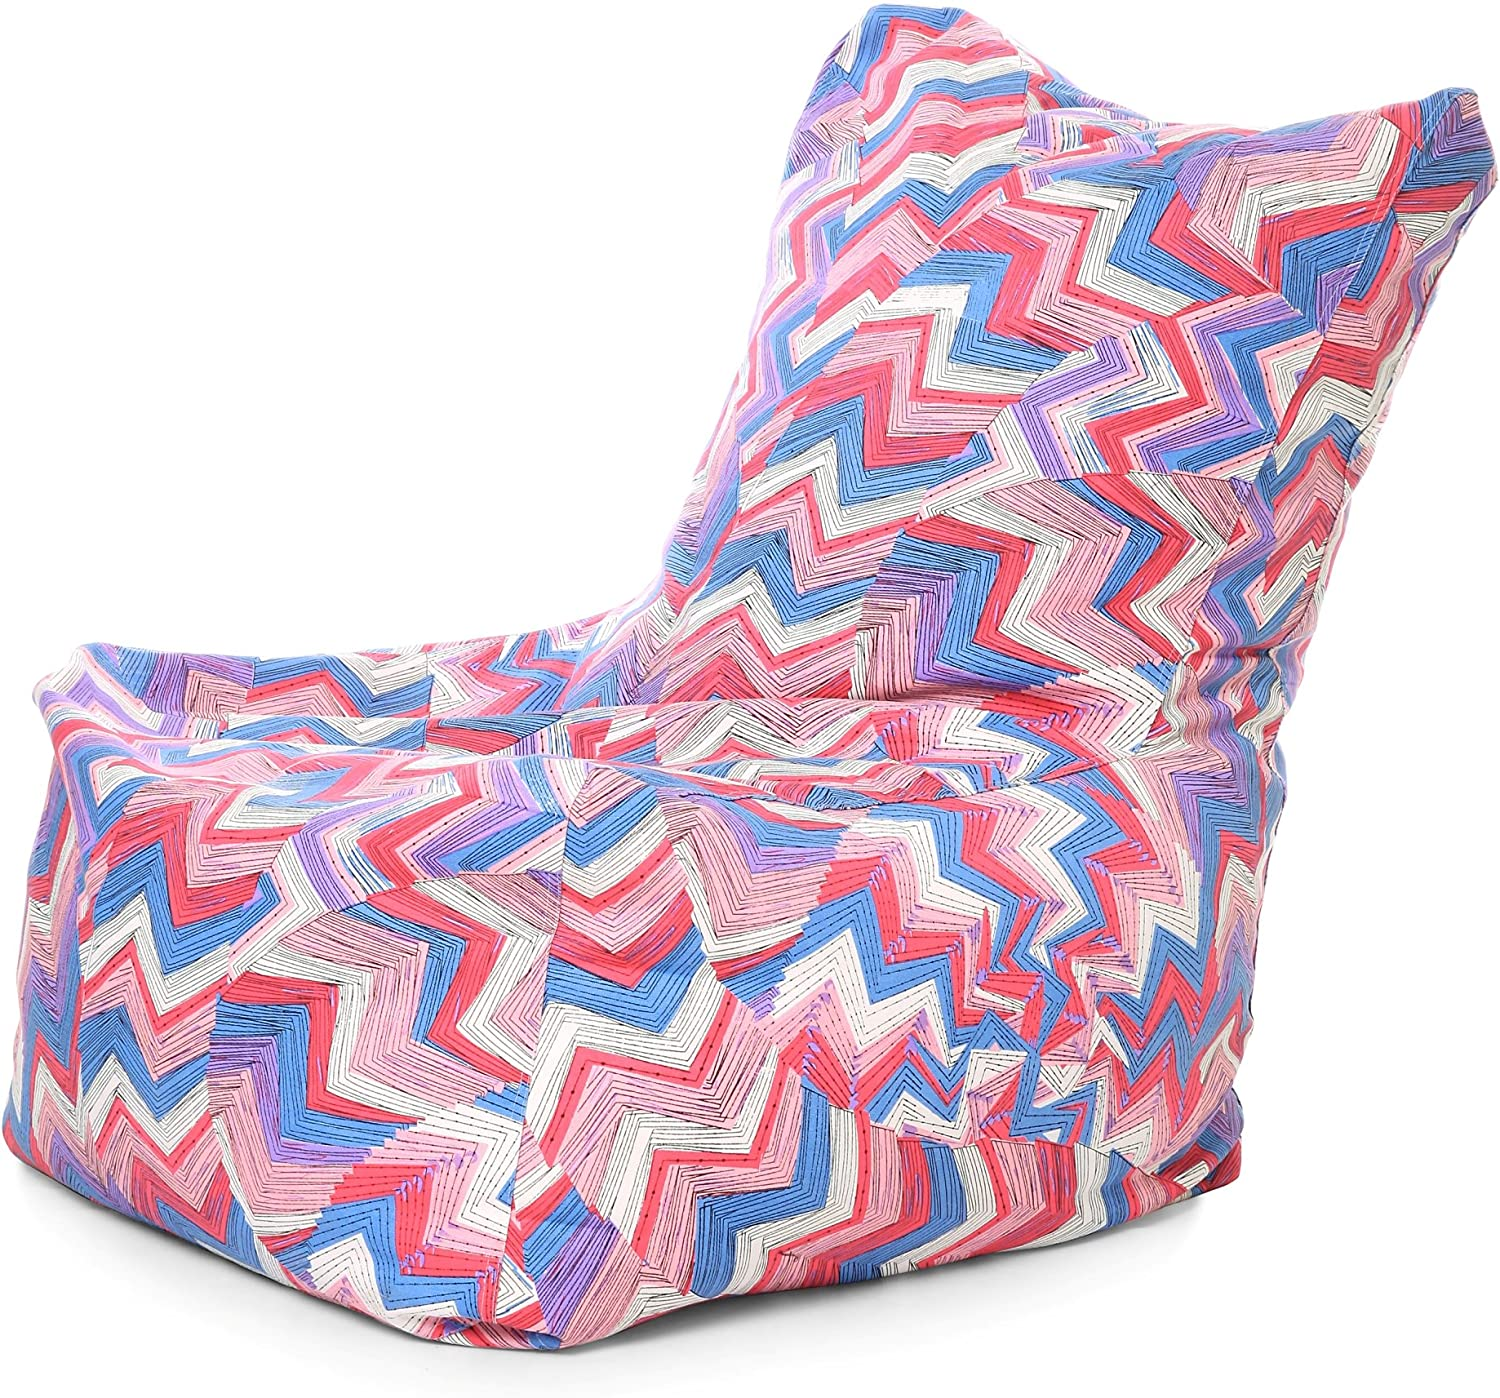 Style Homez Chair Cotton Canvas Geometric Printed Bean Bag XXL Size Cover Only